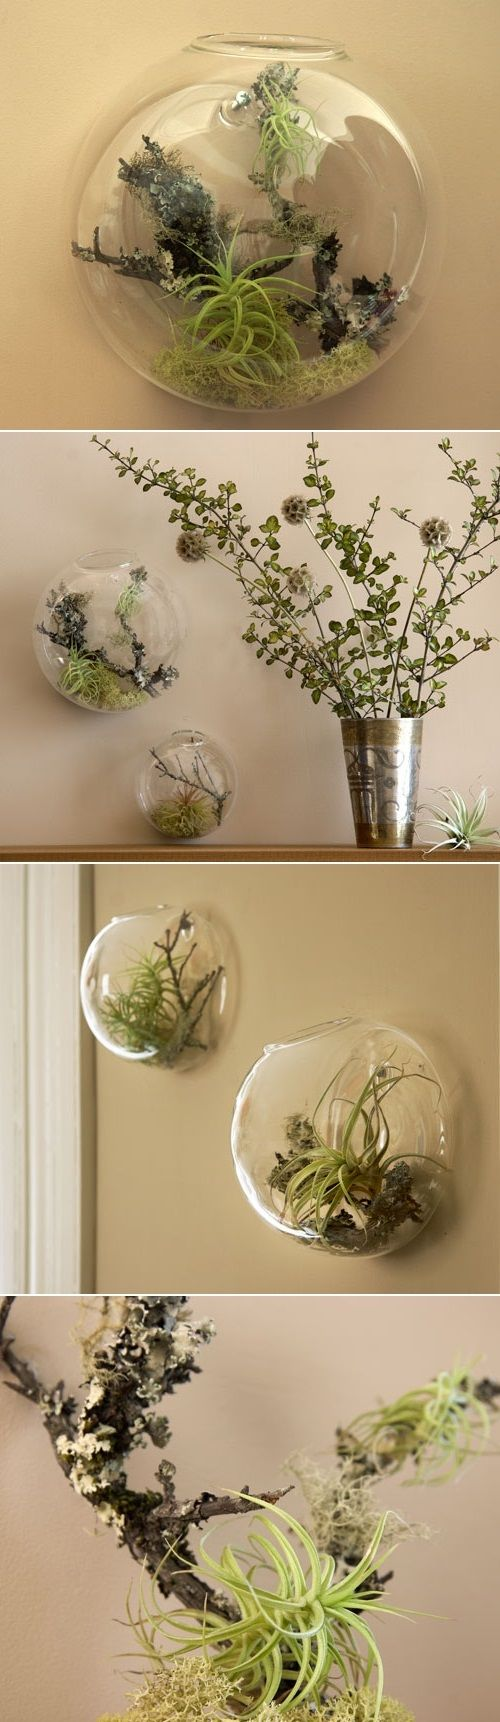 Wall Vases With Air Plants